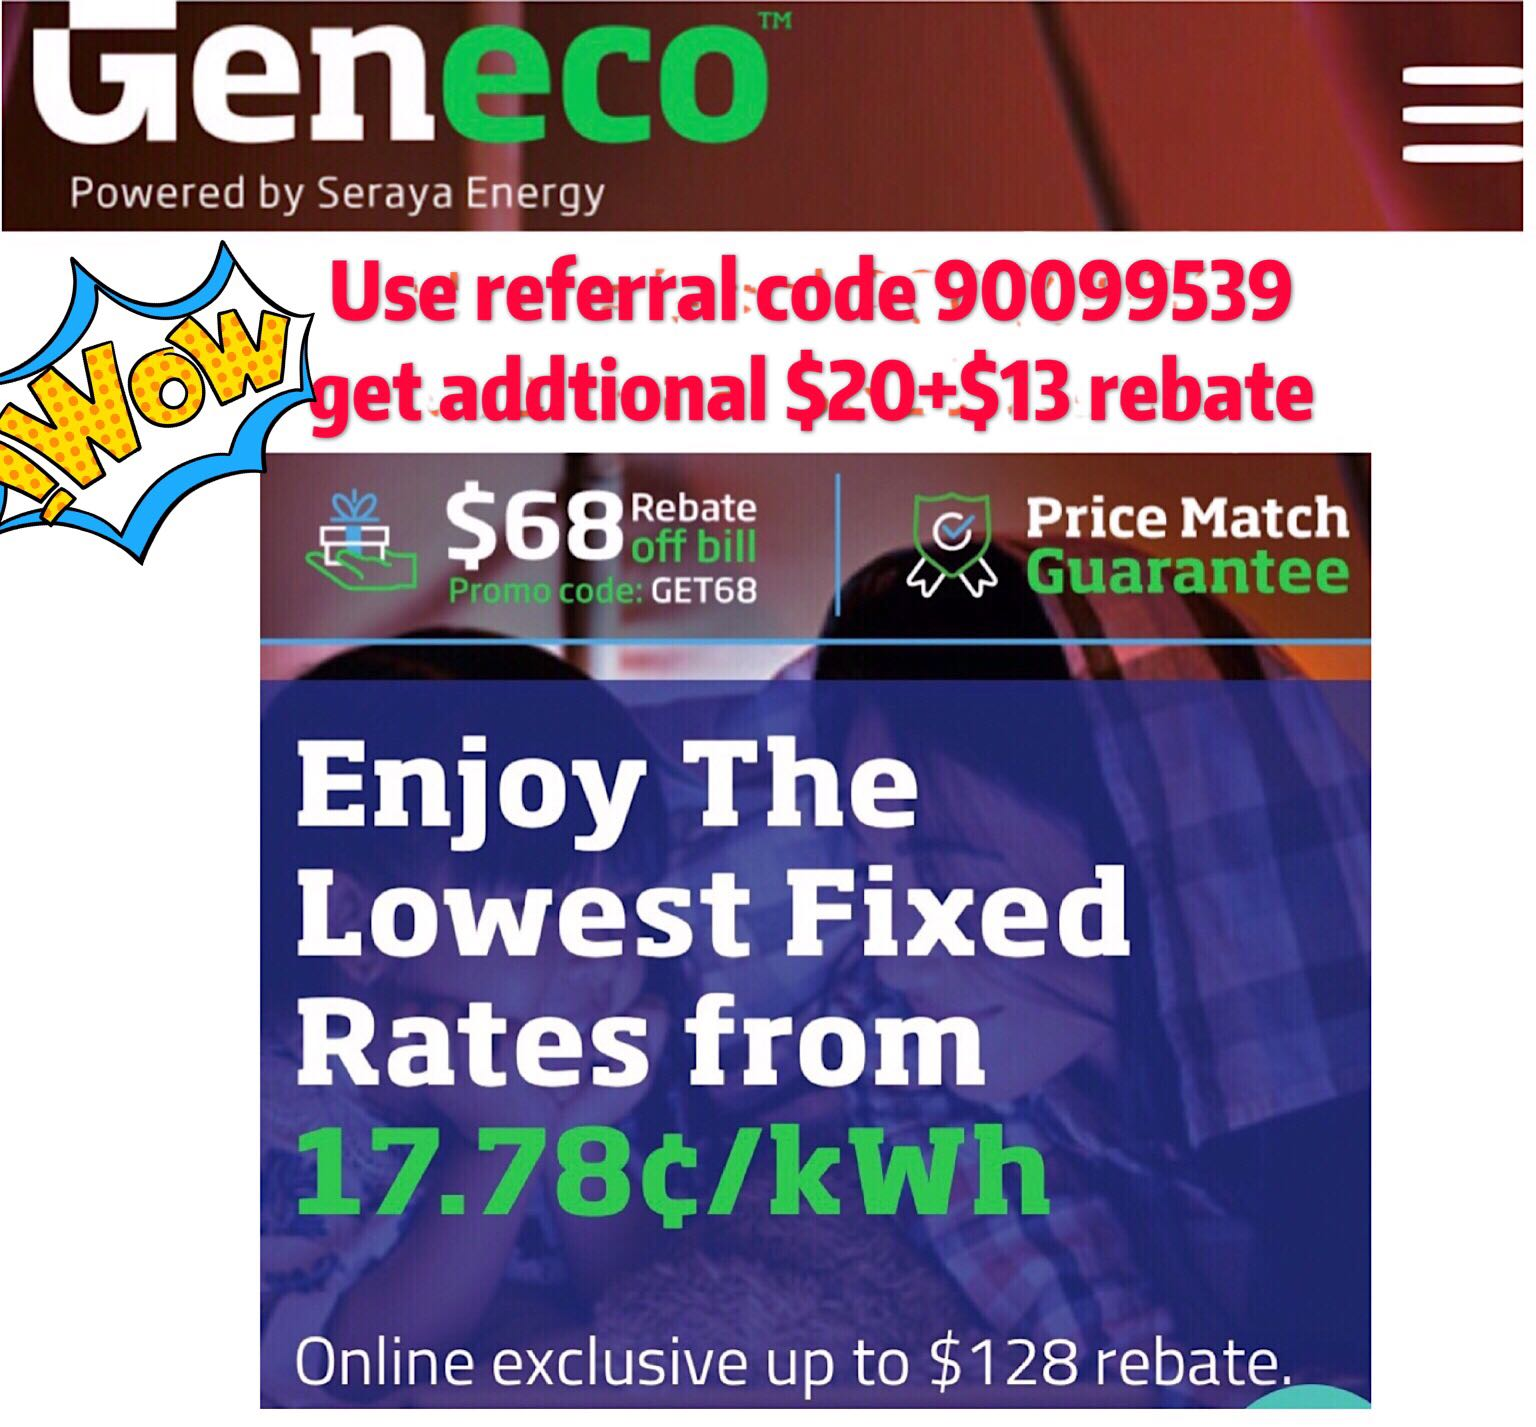 The best rebate of geneco, Entertainment, Gift Cards